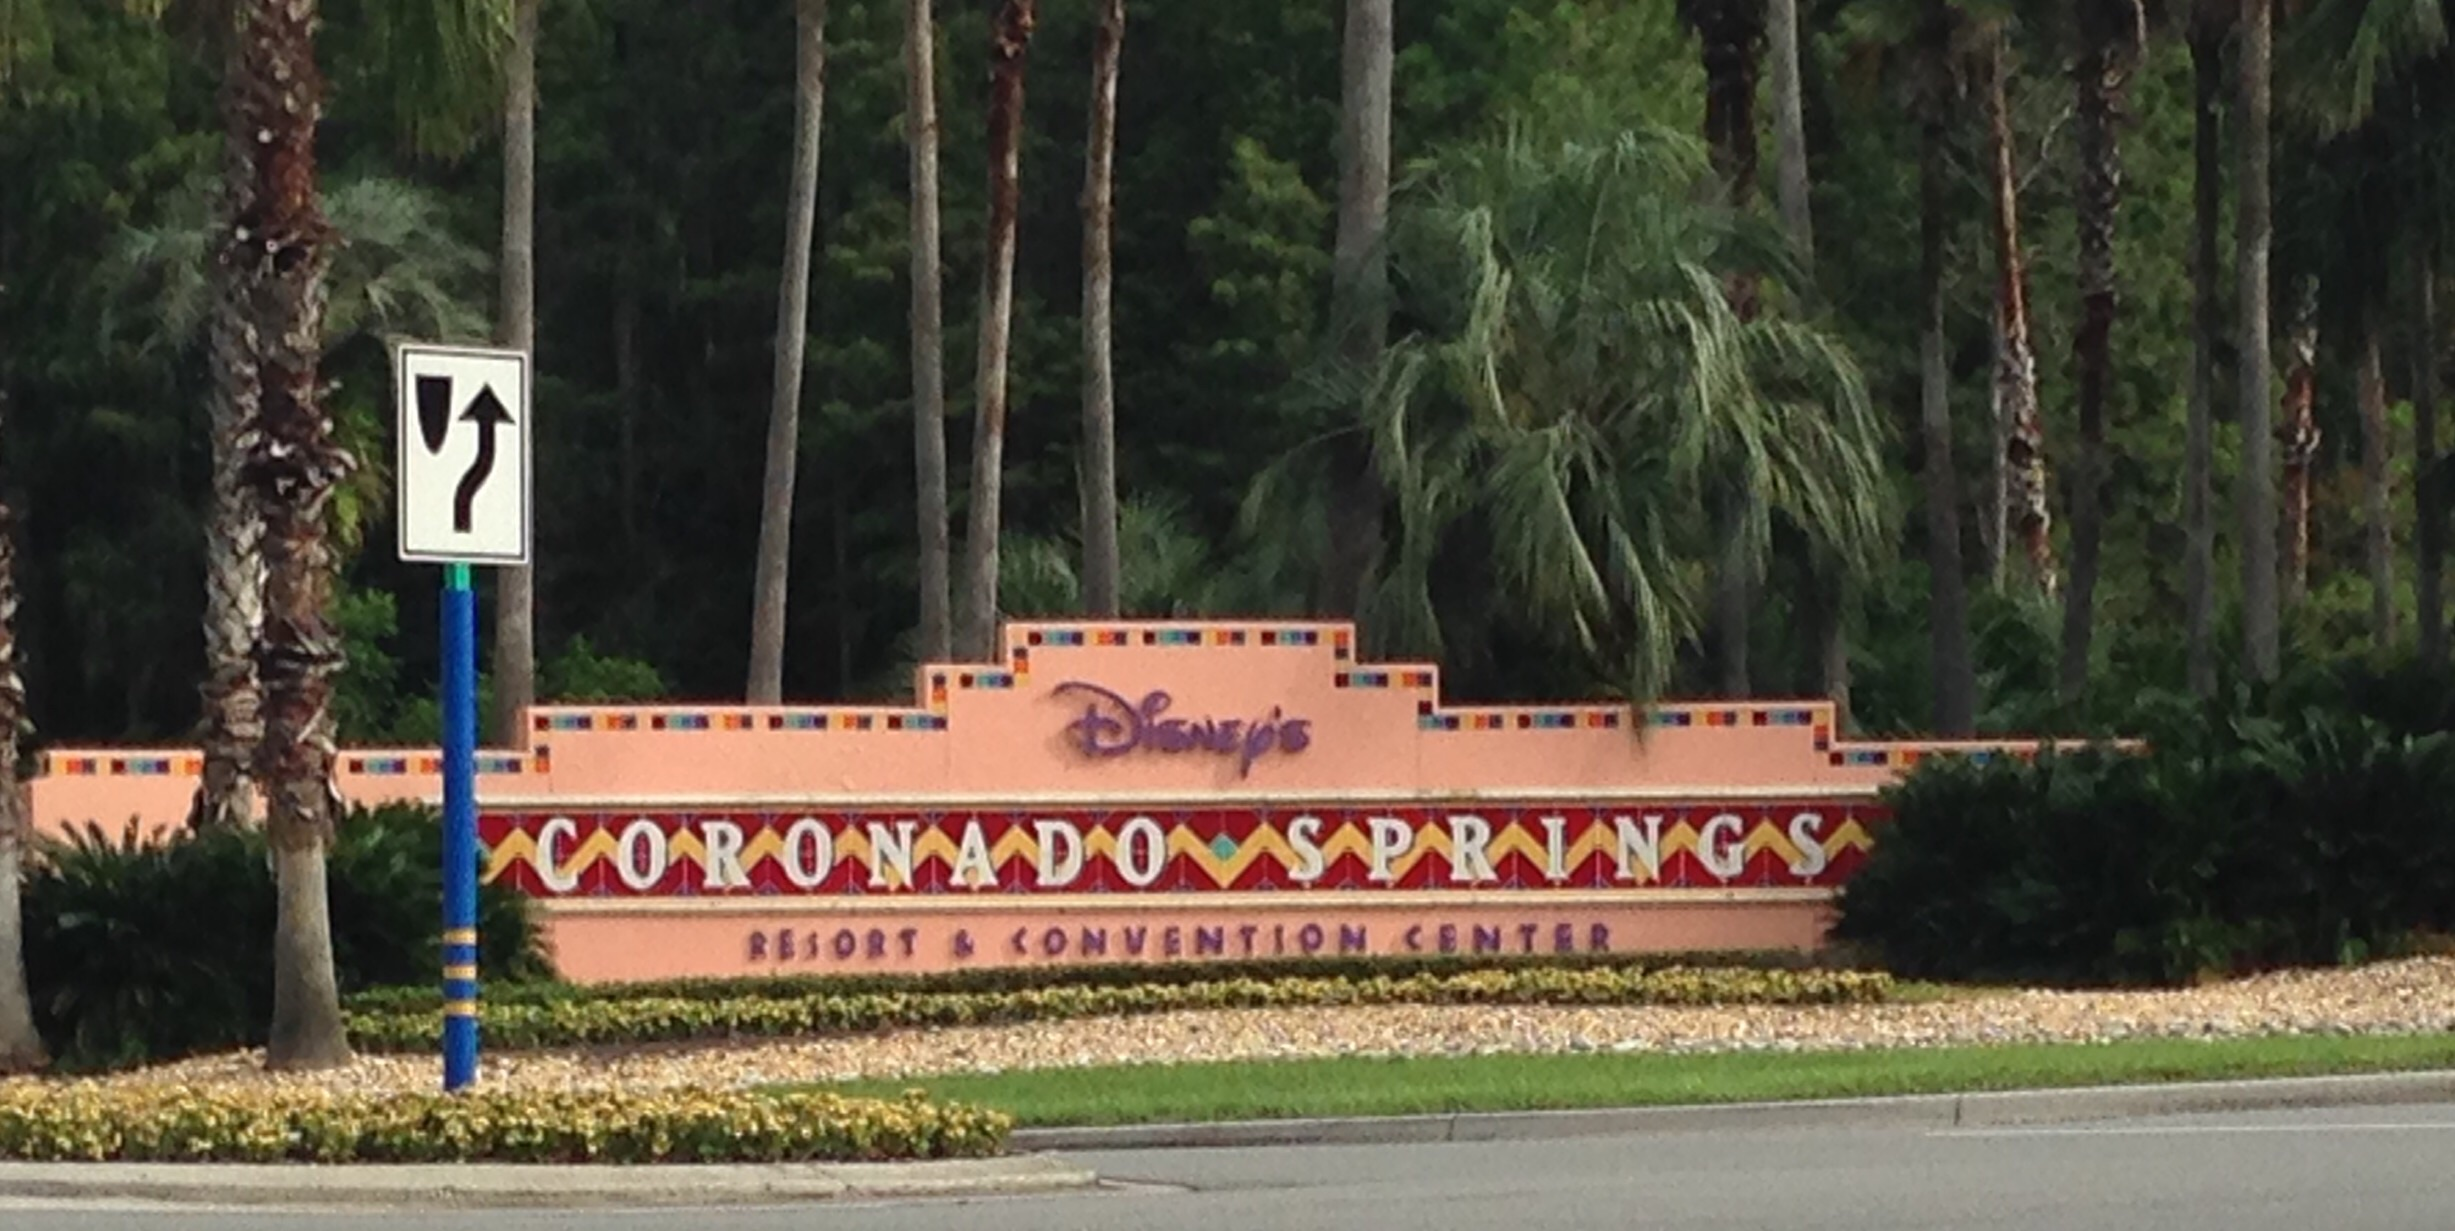 Staying at The Coronado Springs Resort